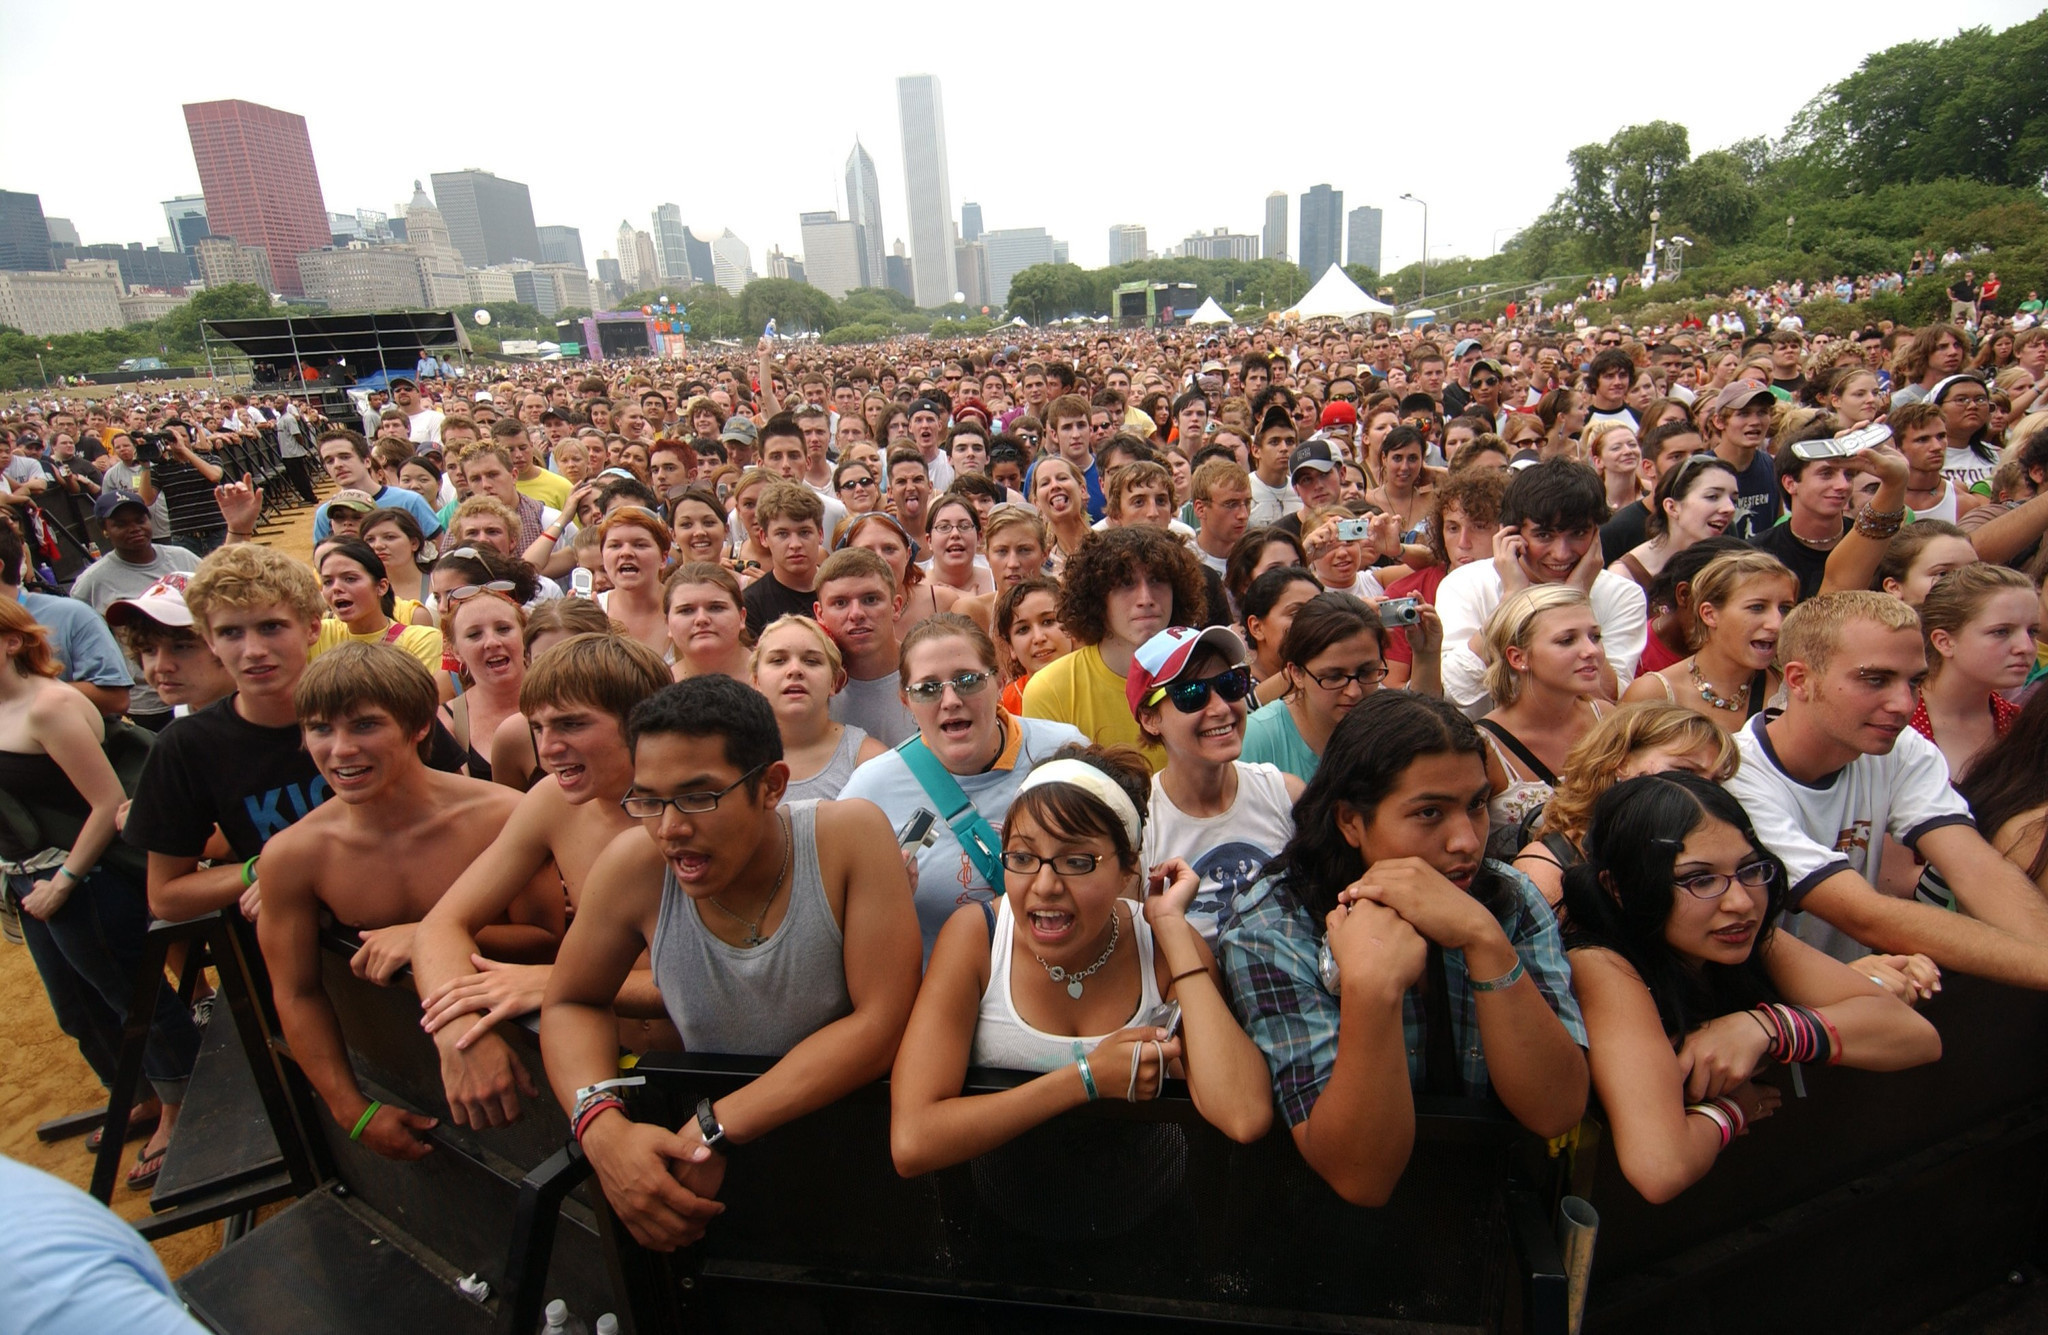 Lollapalooza 2016 details on tickets, transportation, food and more ...